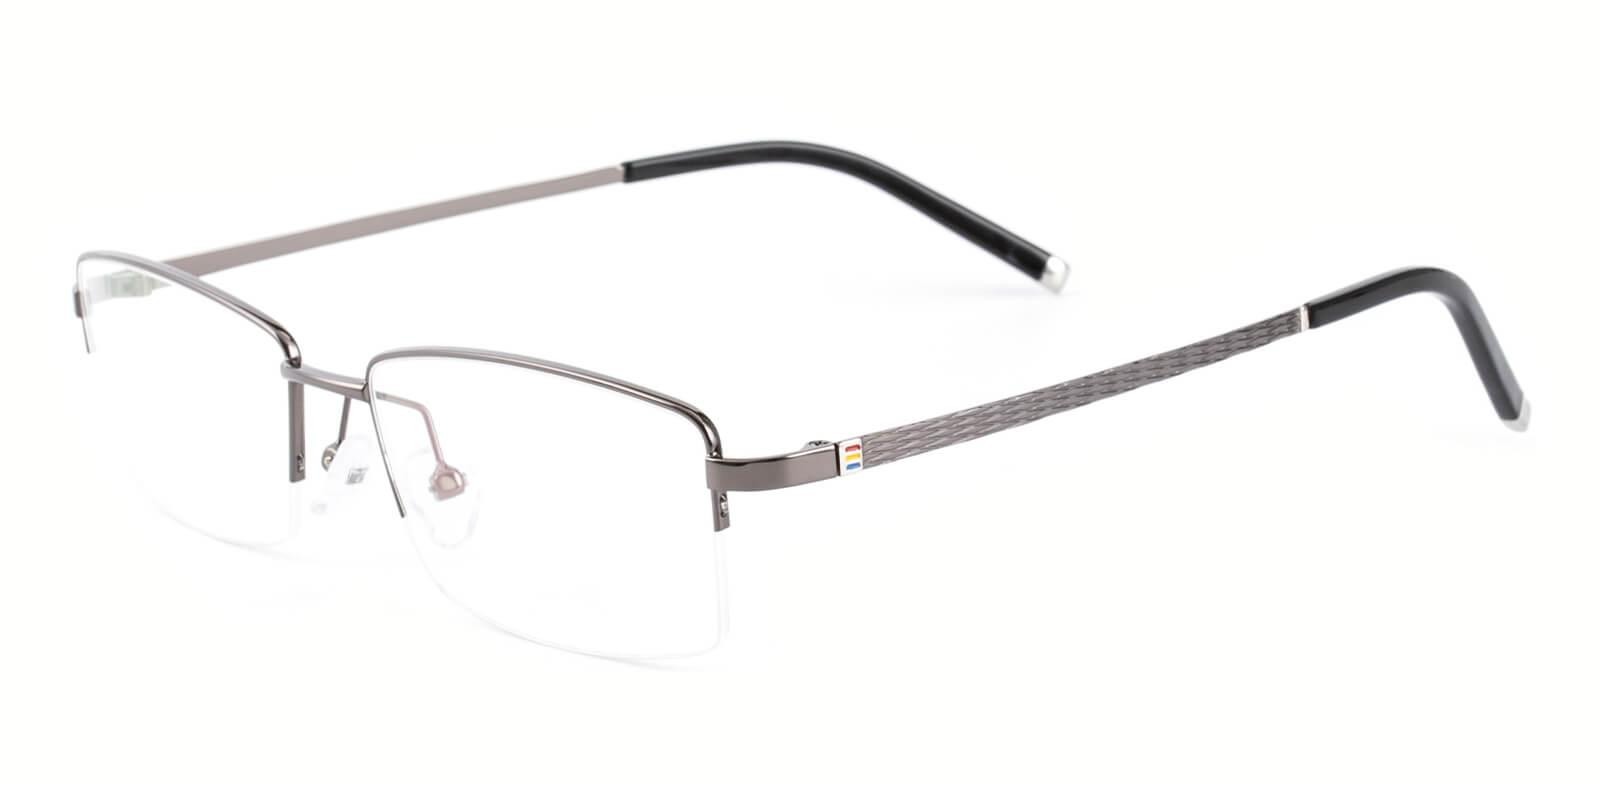 Emerge-Gun-Rectangle-Titanium-Eyeglasses-additional1